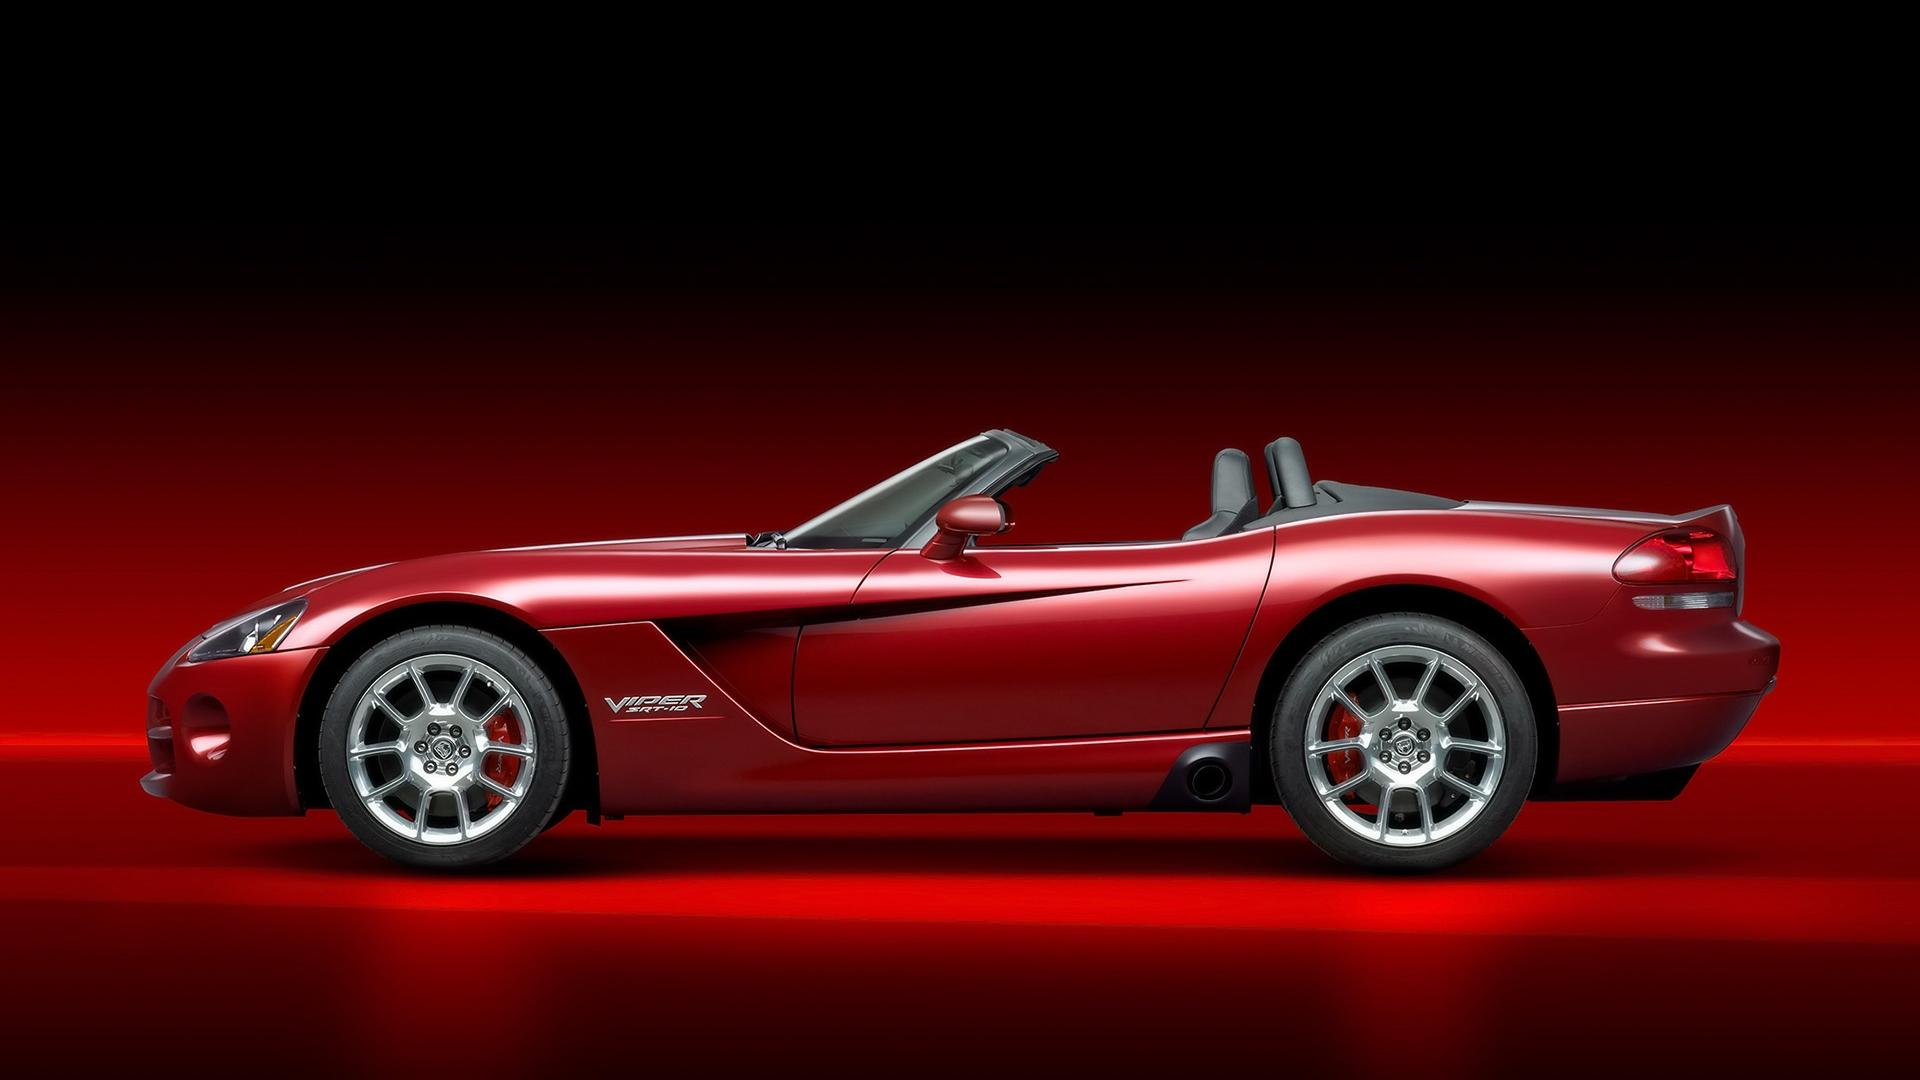 2008 Dodge Viper Srt10 Roadster Side 1920x1080